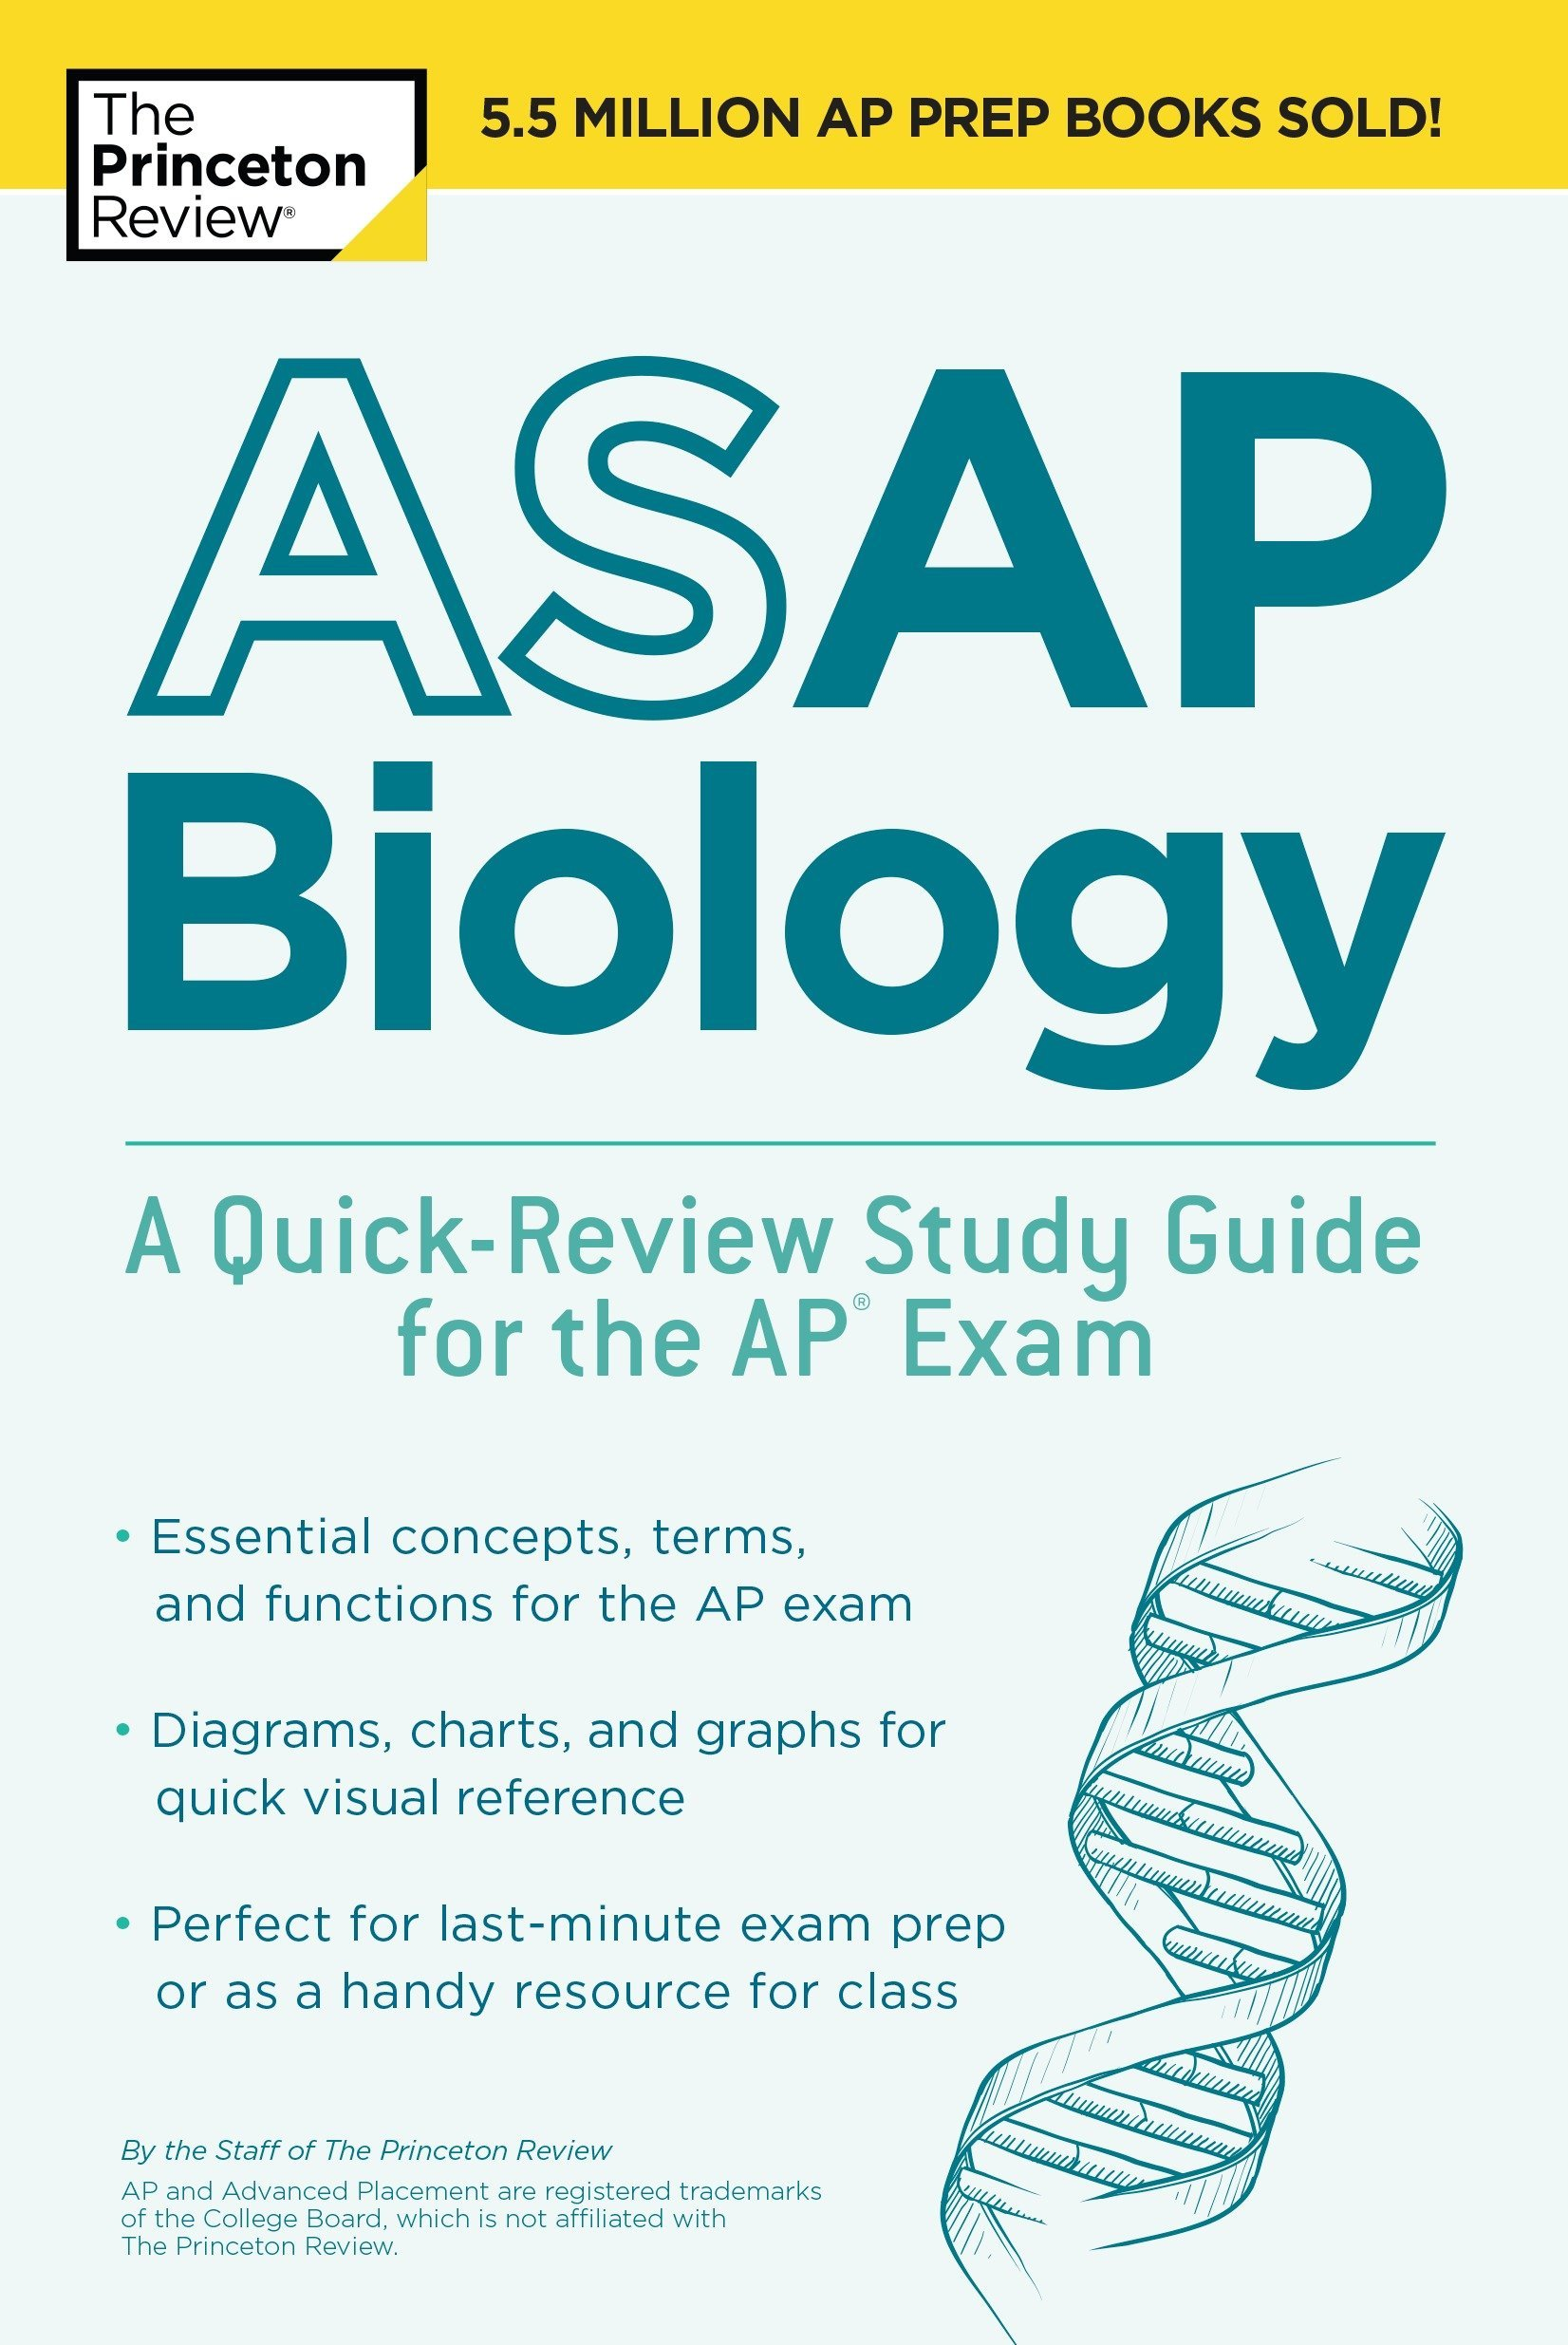 Amazon.com: ASAP Biology: A Quick-Review Study Guide for the AP Exam  (College Test Preparation) (9781524757649): Princeton Review: Books